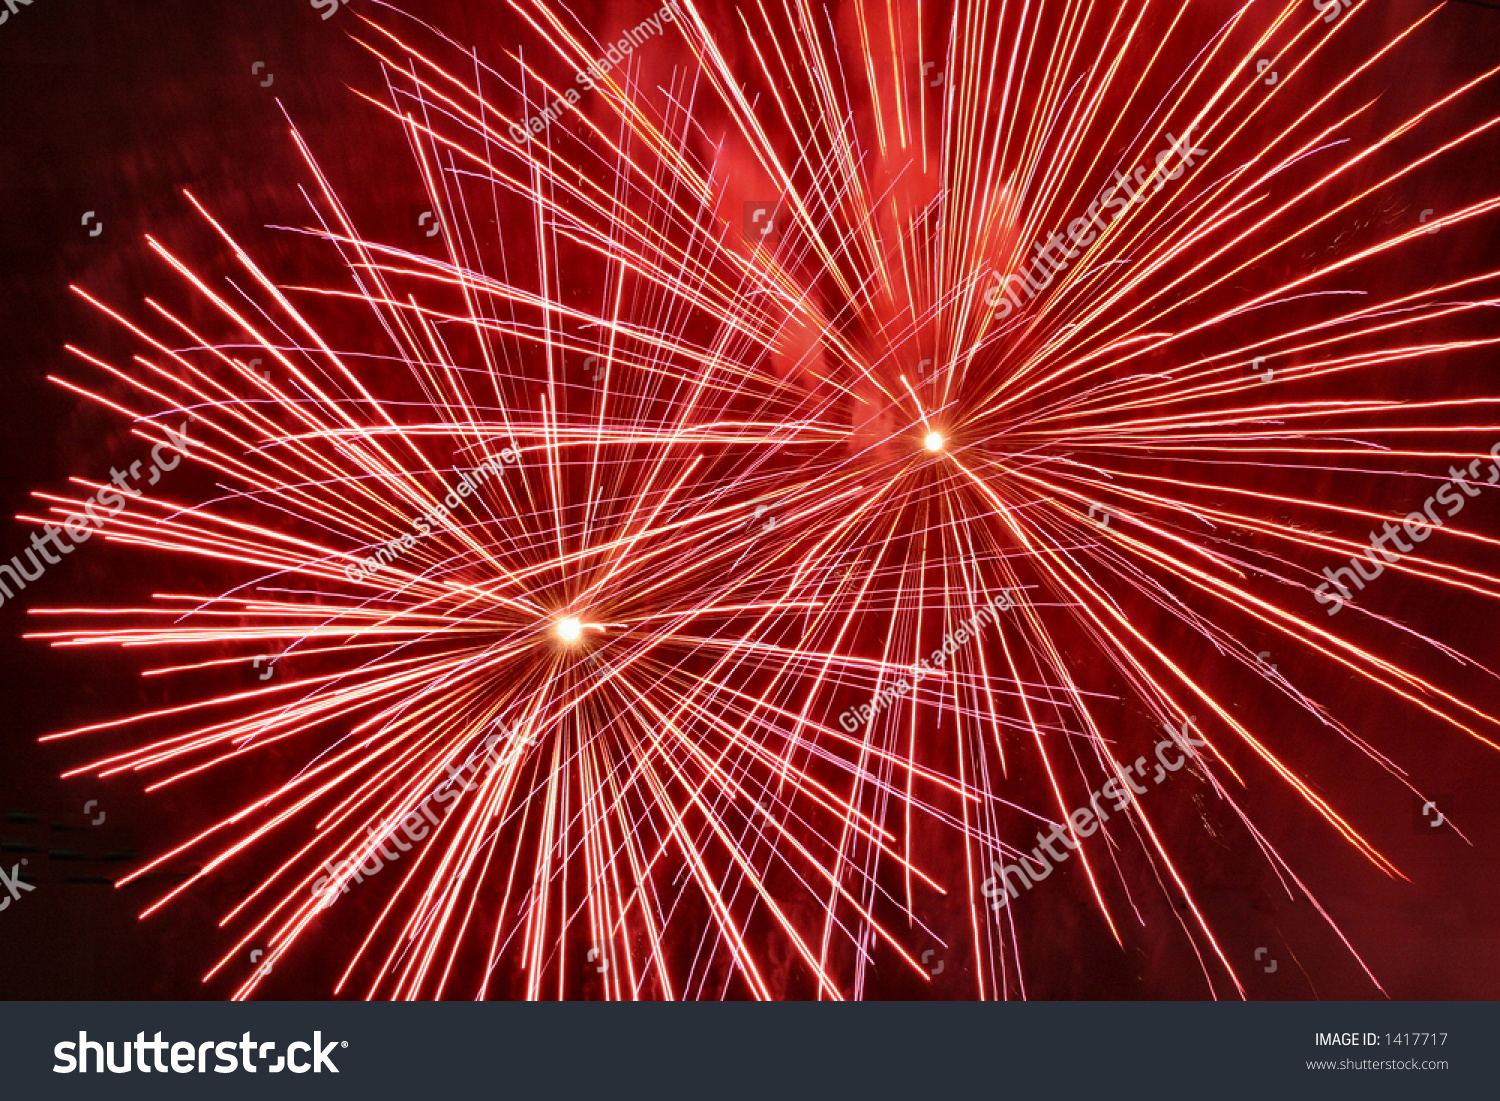 Red Fireworks Free Stock Photo: Burst Two Red Fireworks Explode Fill Stock Photo 1417717